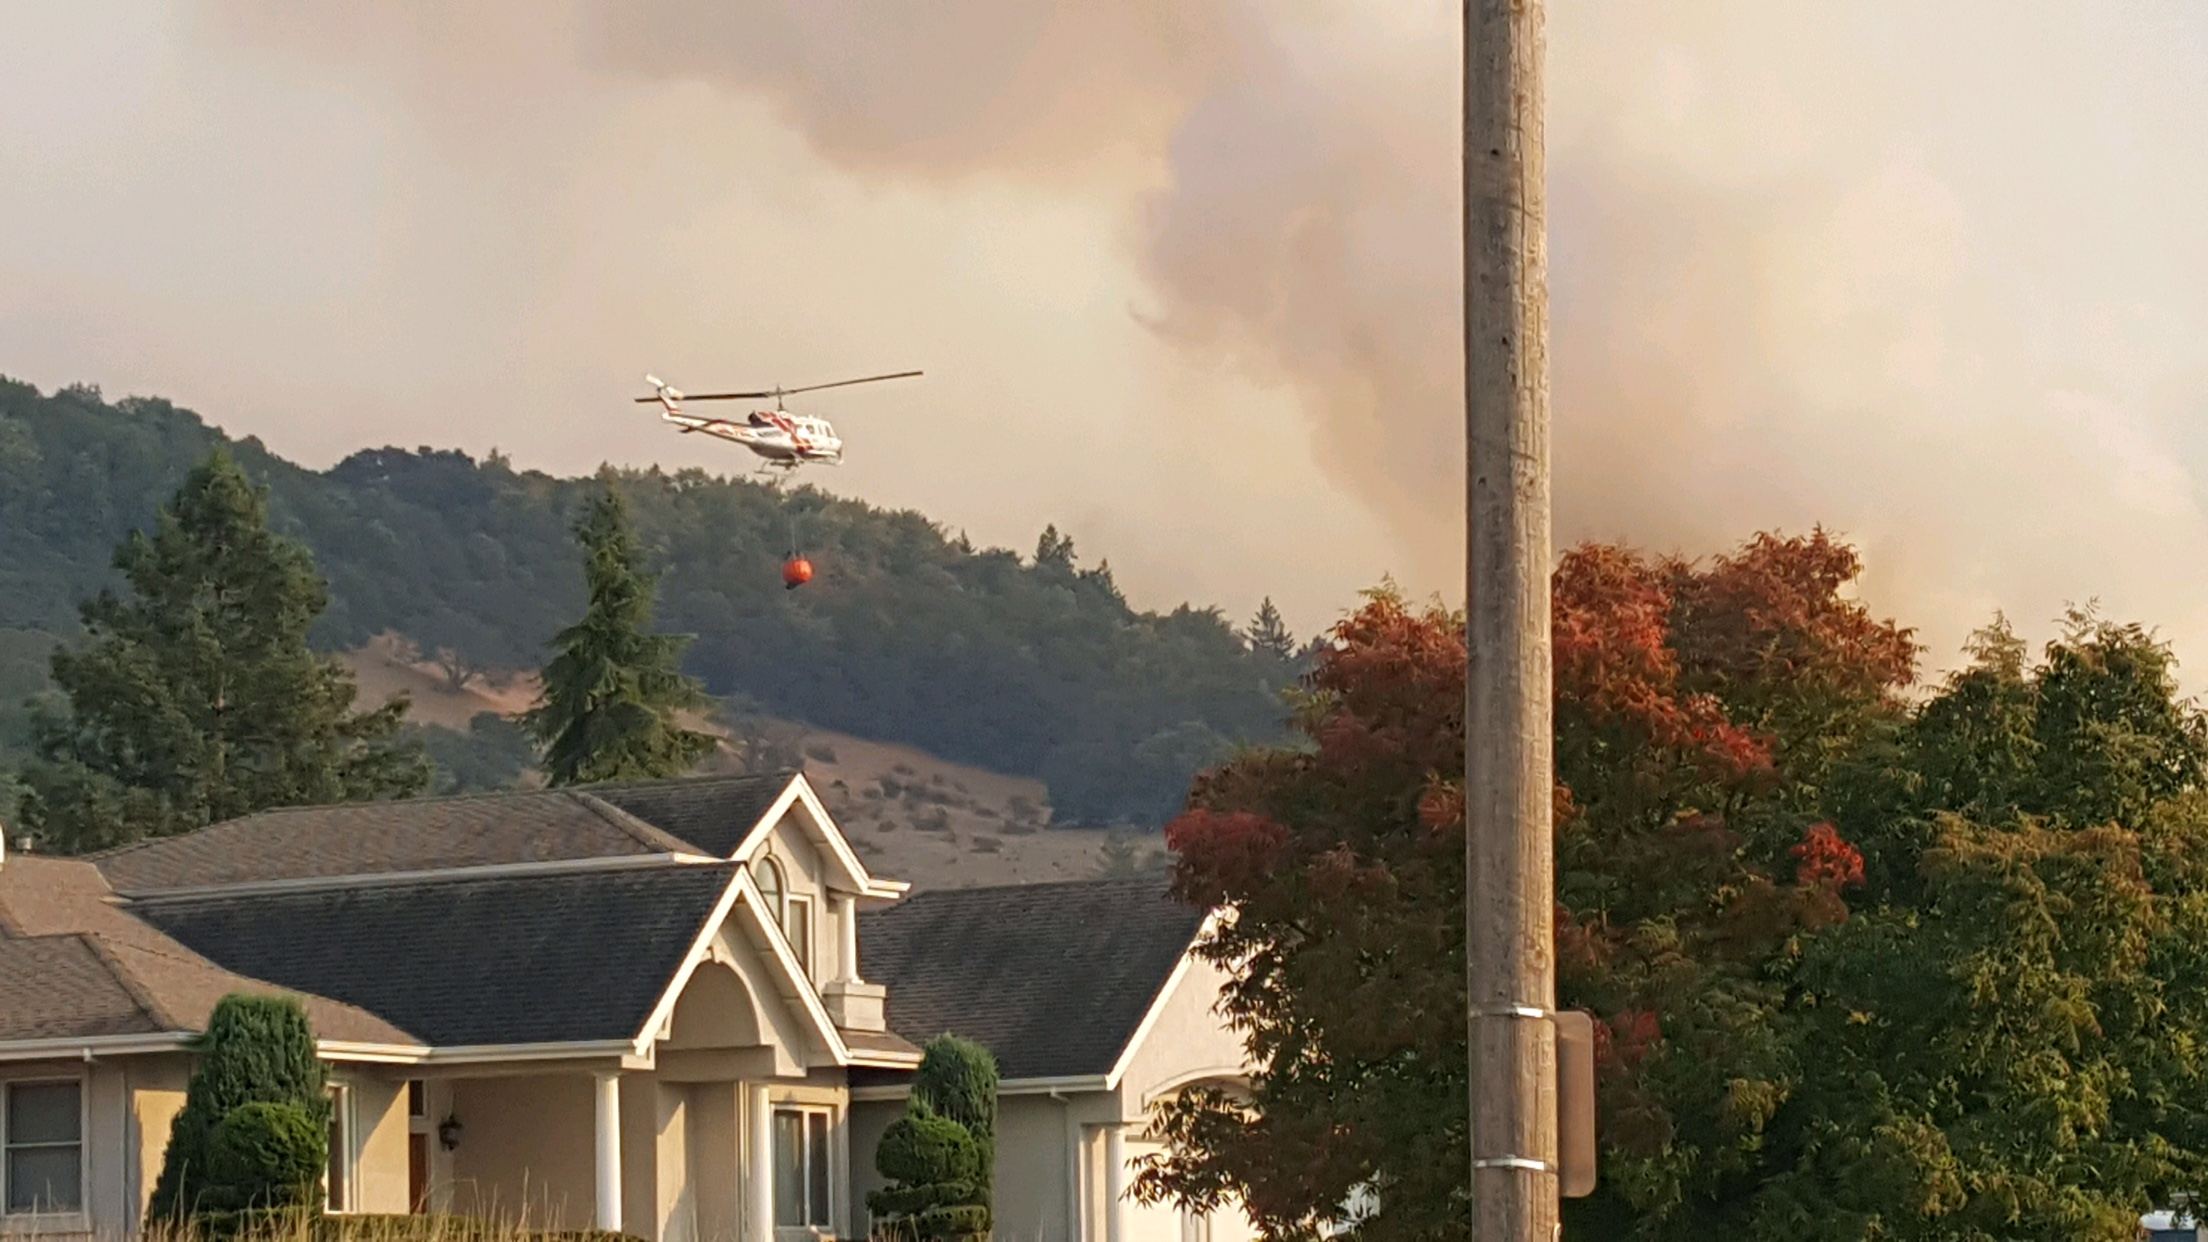 The Lane County Strike Teams are stationed near the Nunn Fire in Santa Rosa, Calif. (Submitted photo)<p></p>